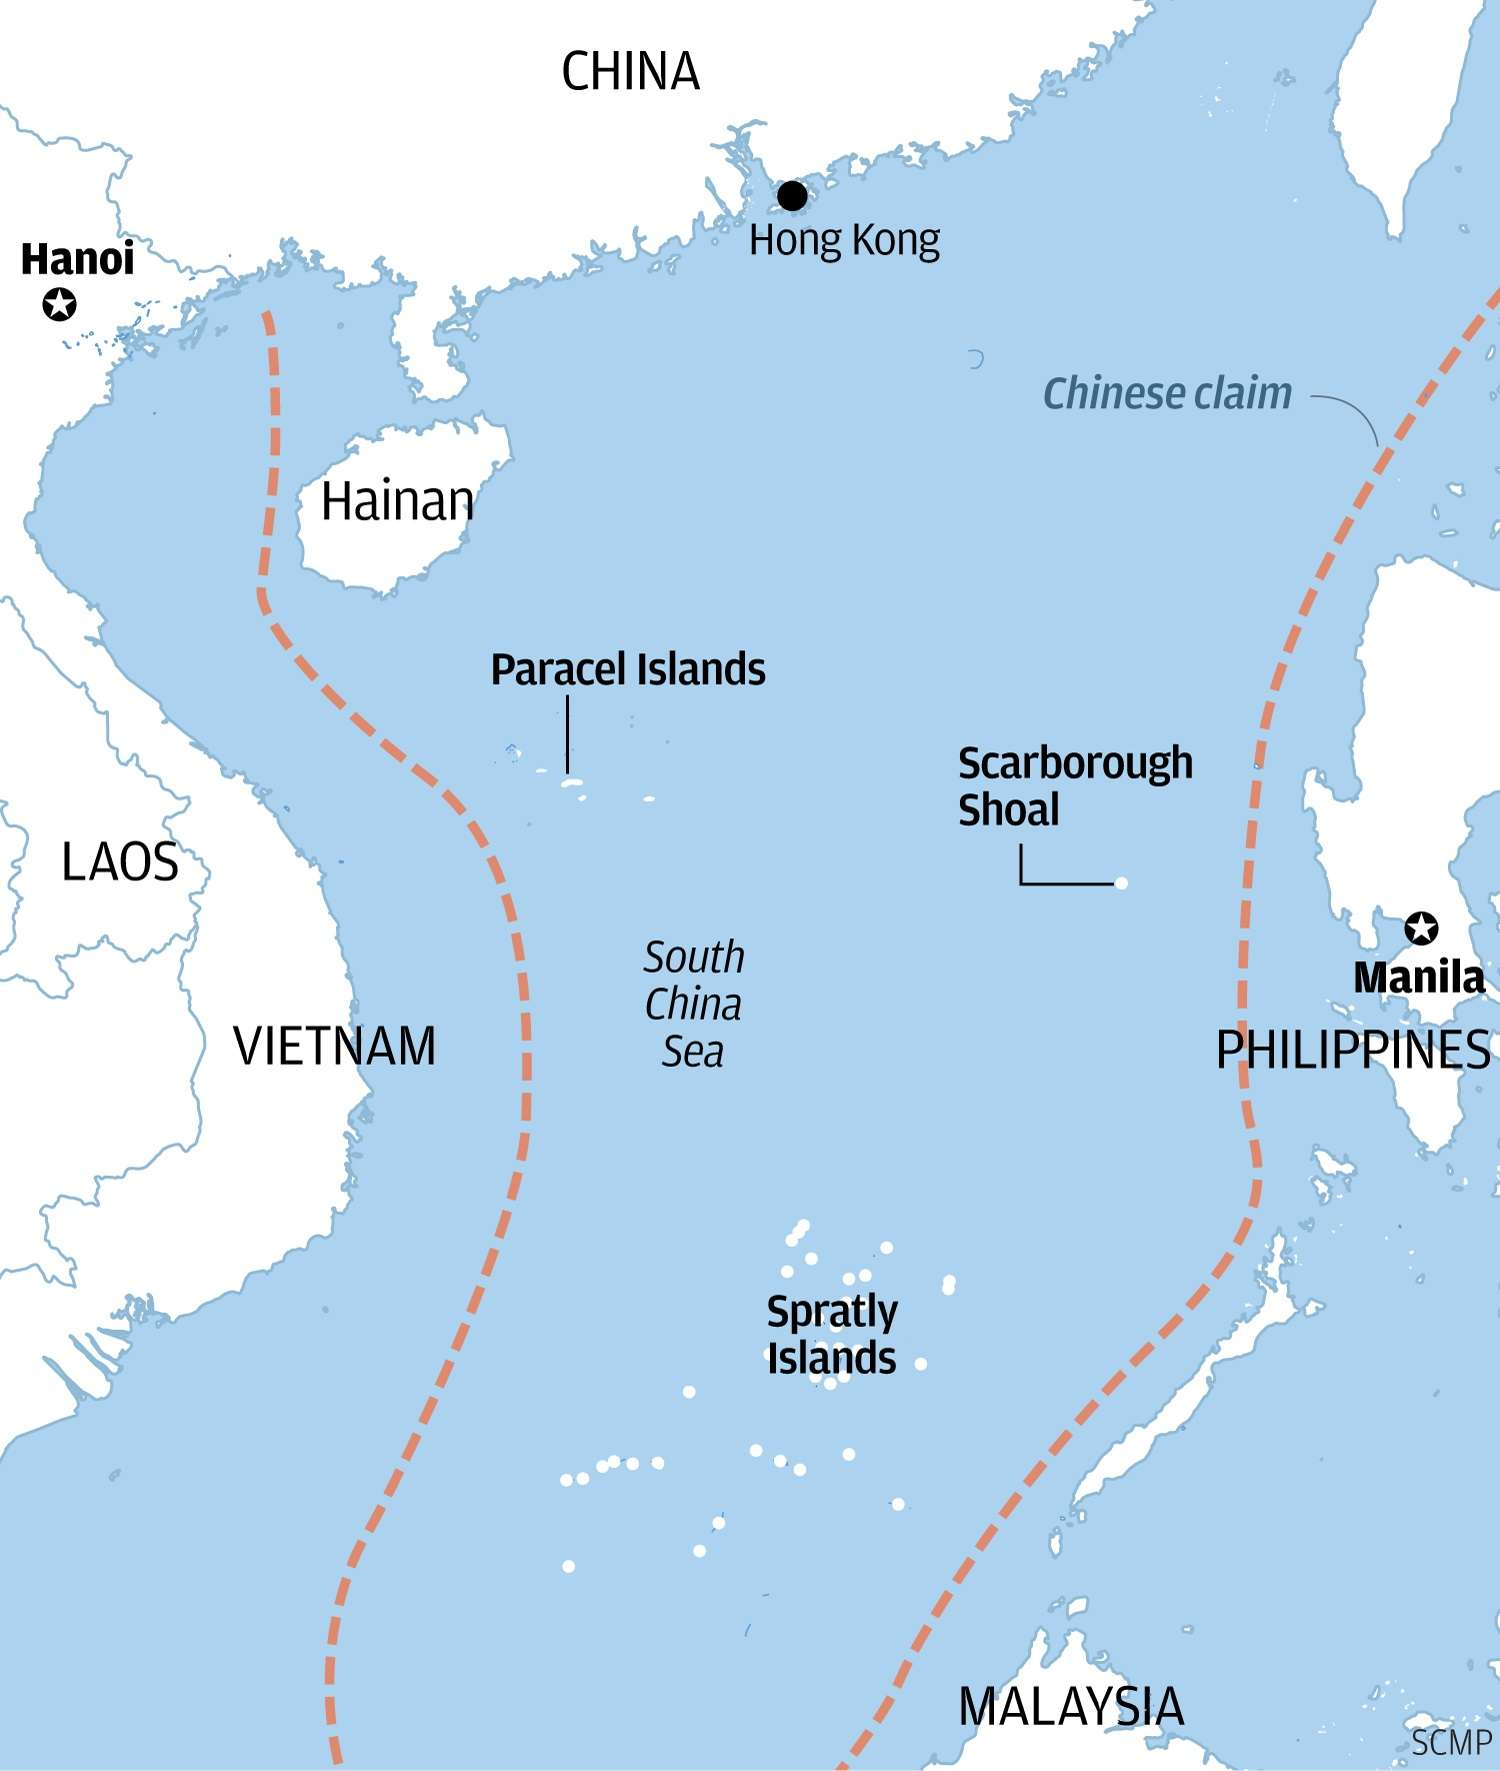 Beijing rejects tribunal's ruling in South China Sea case